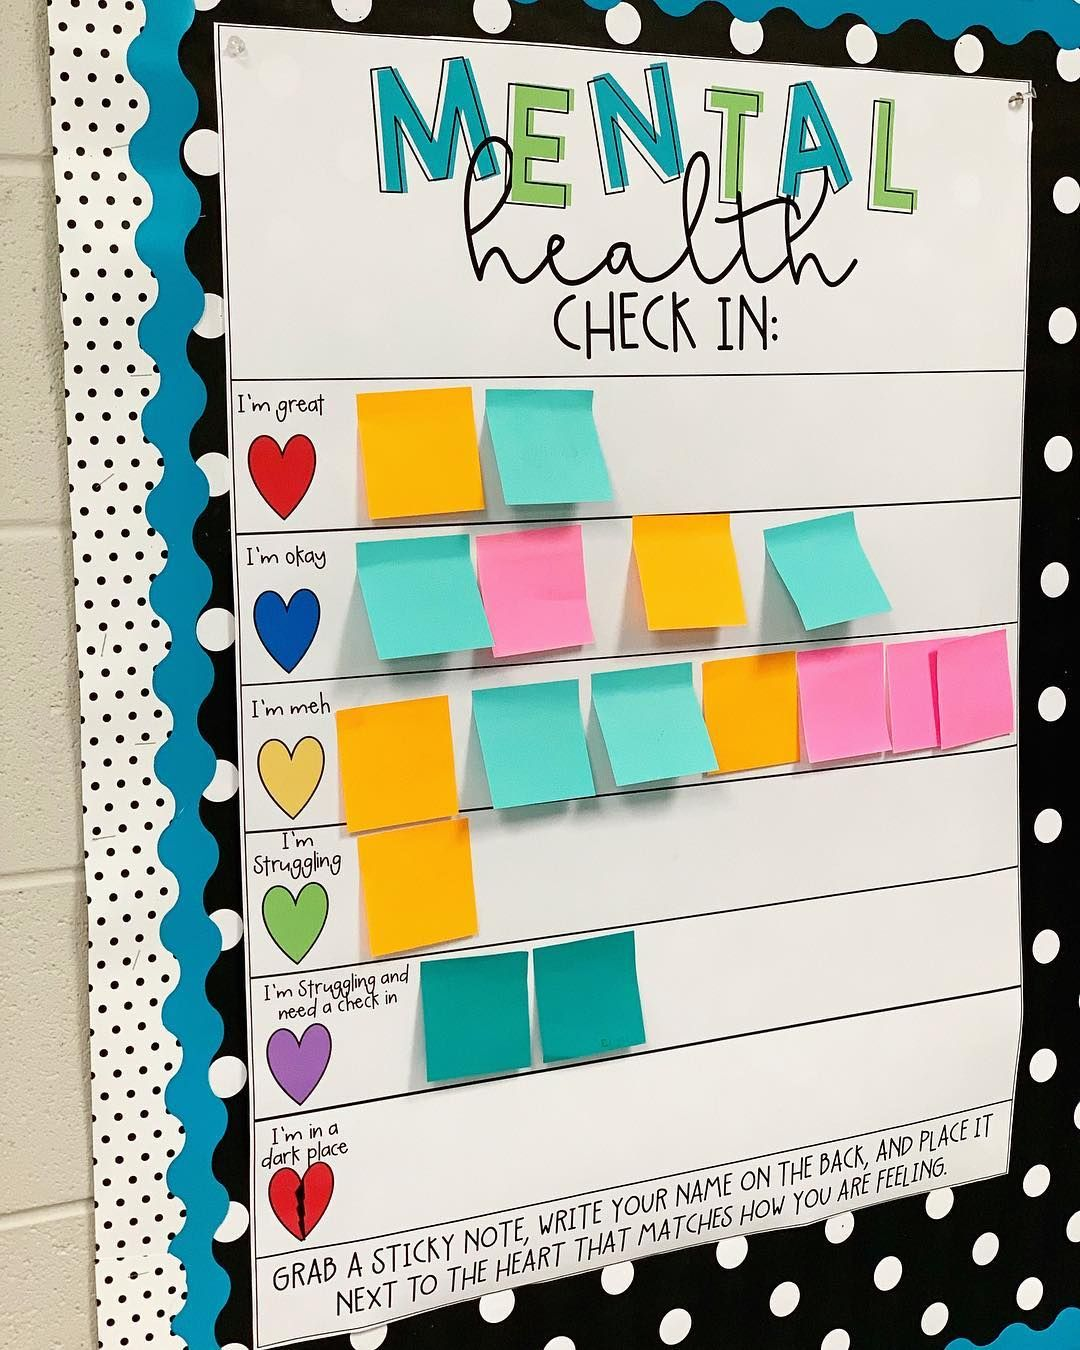 Erin Castillo, an educator at John F. Kennedy High School in Freemont, California, created a mental health check-in chart for her students. #classroomdecor